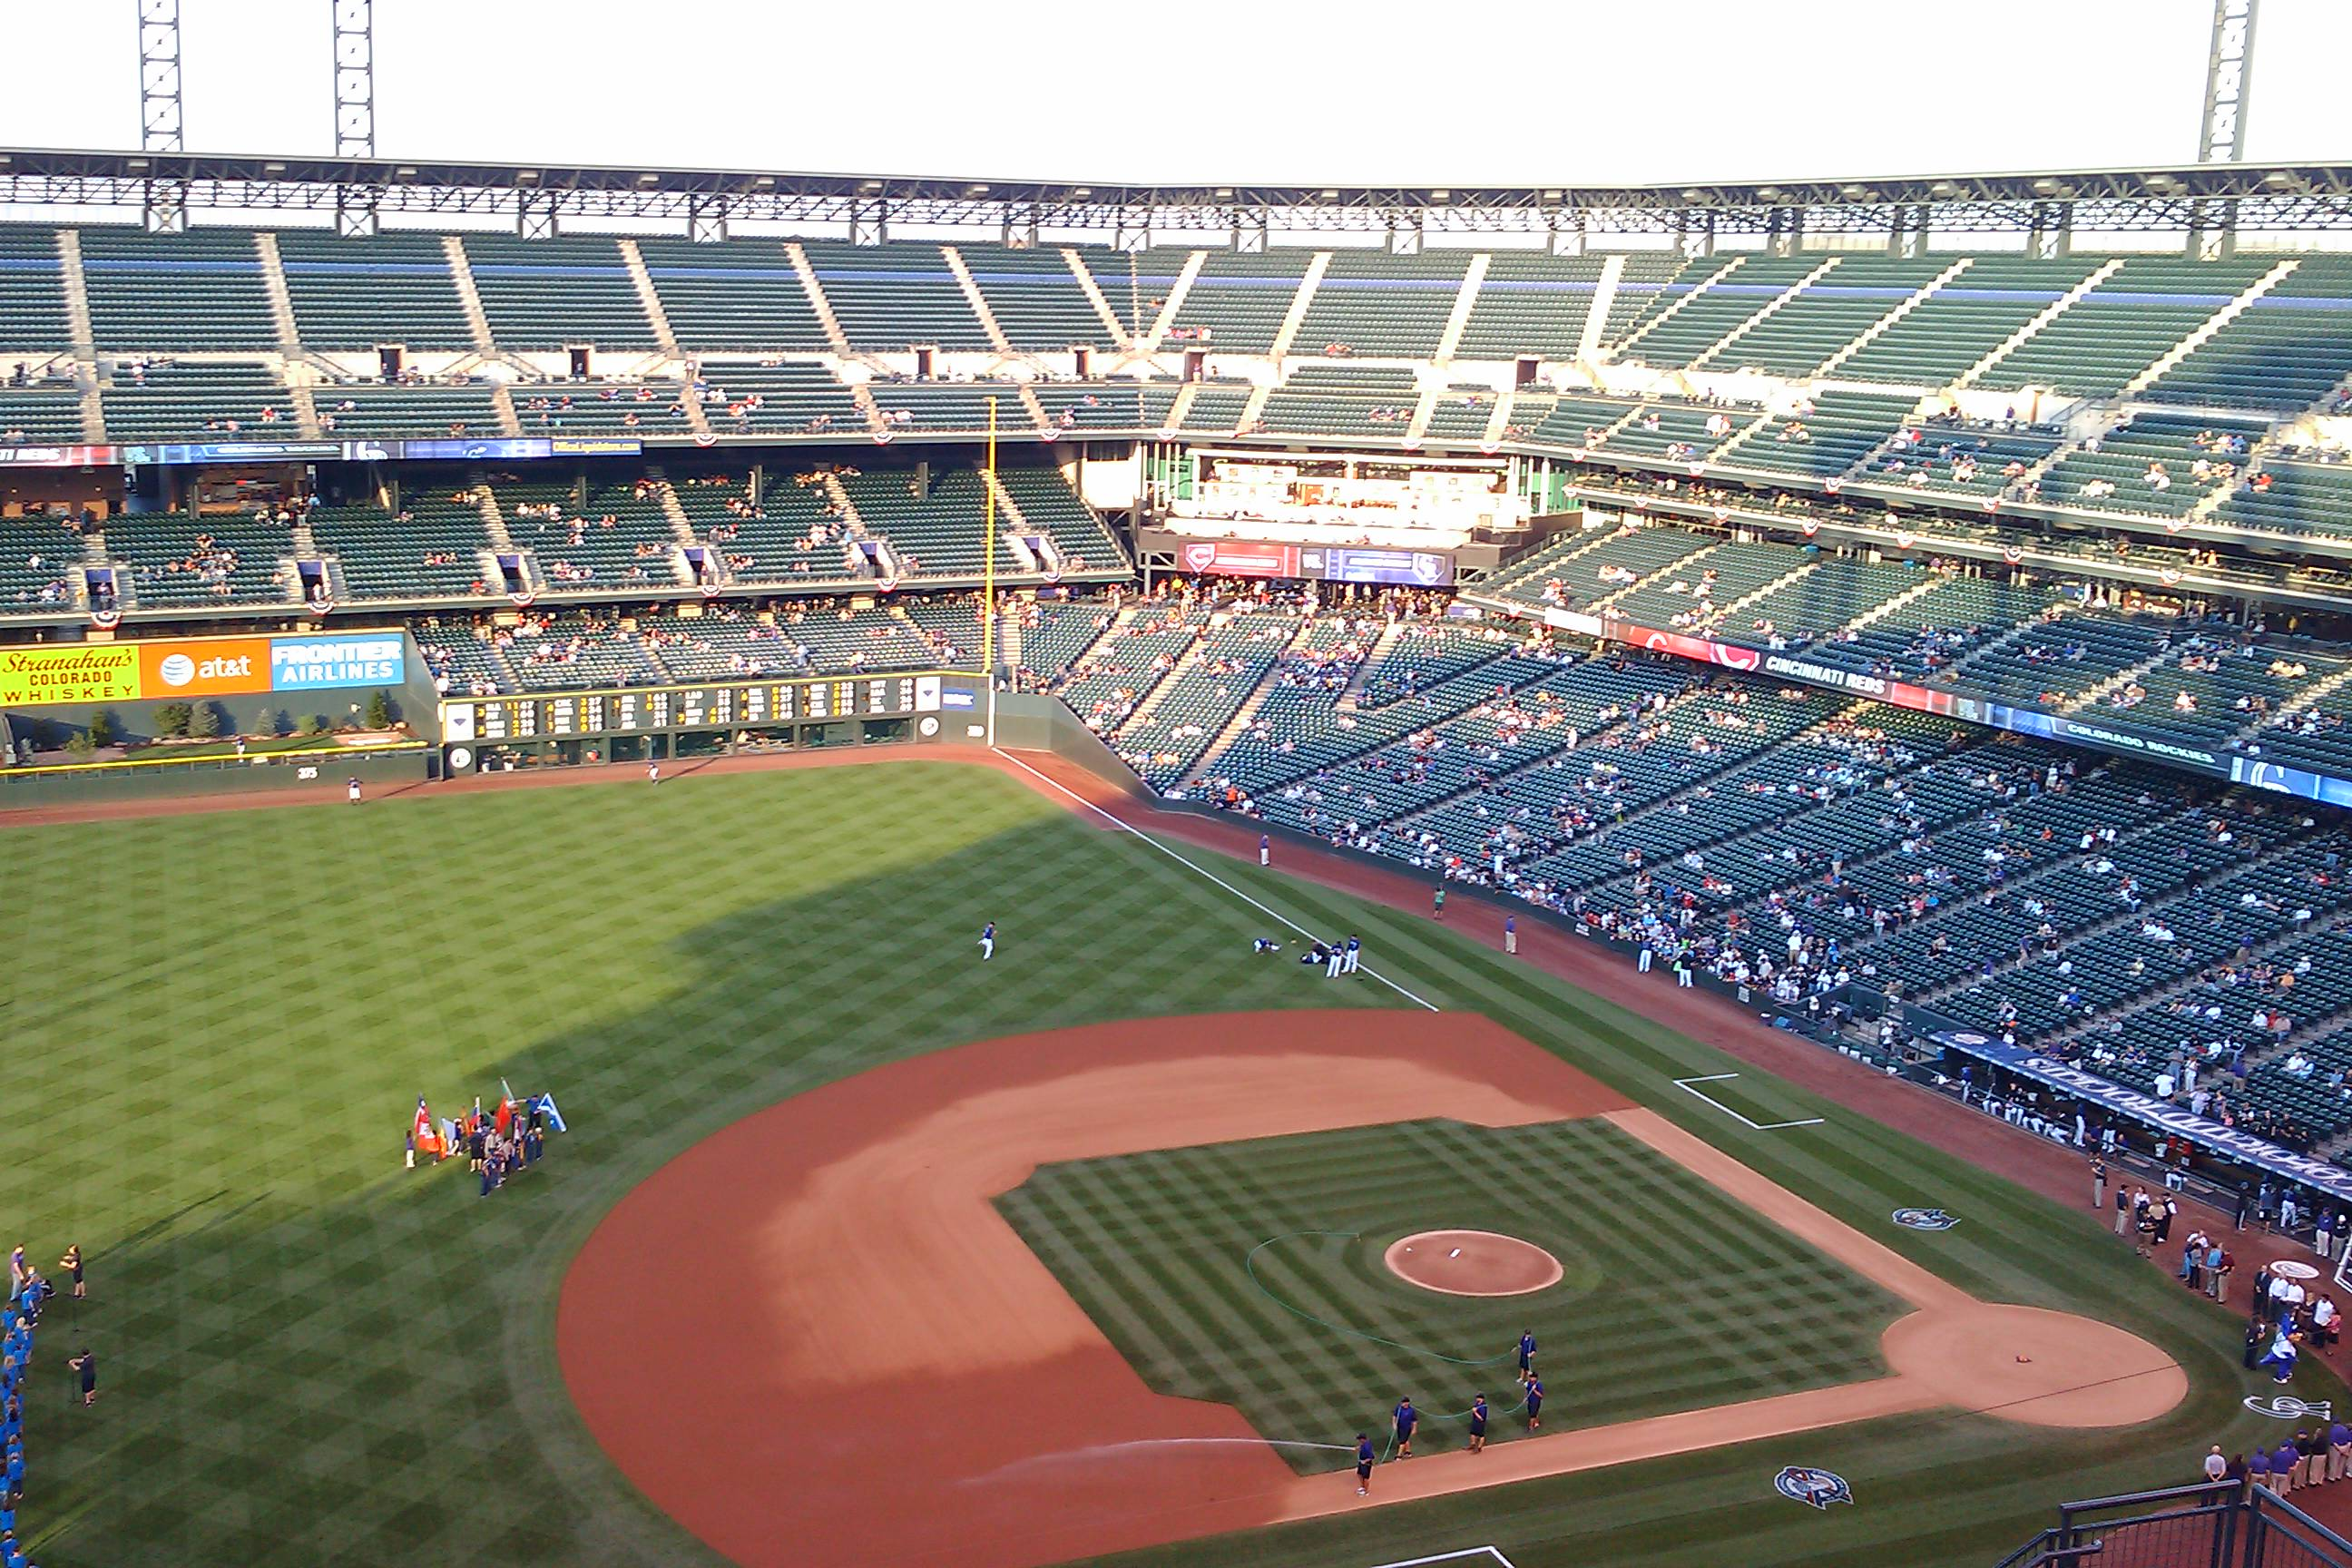 View from the mile high seats in the baseball stadium.